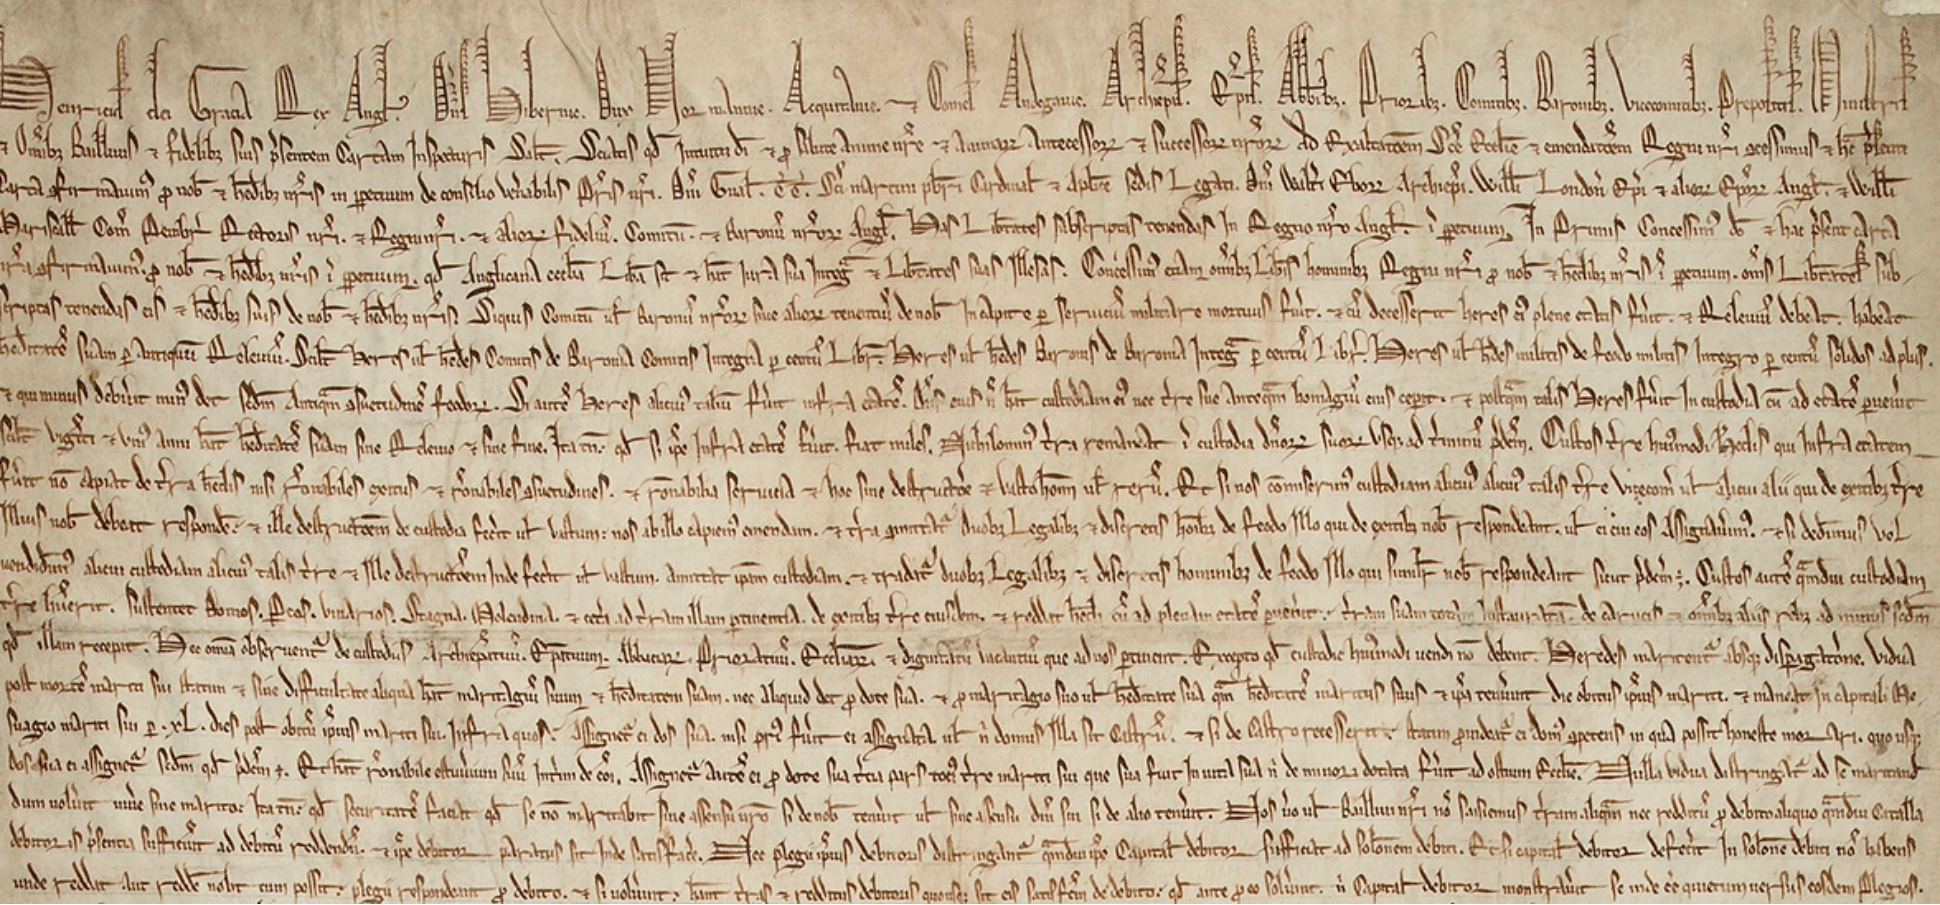 Magna-Carta-1217-Bodleian-Libraries-University-of-Oxford-RESIZEDforweb.png